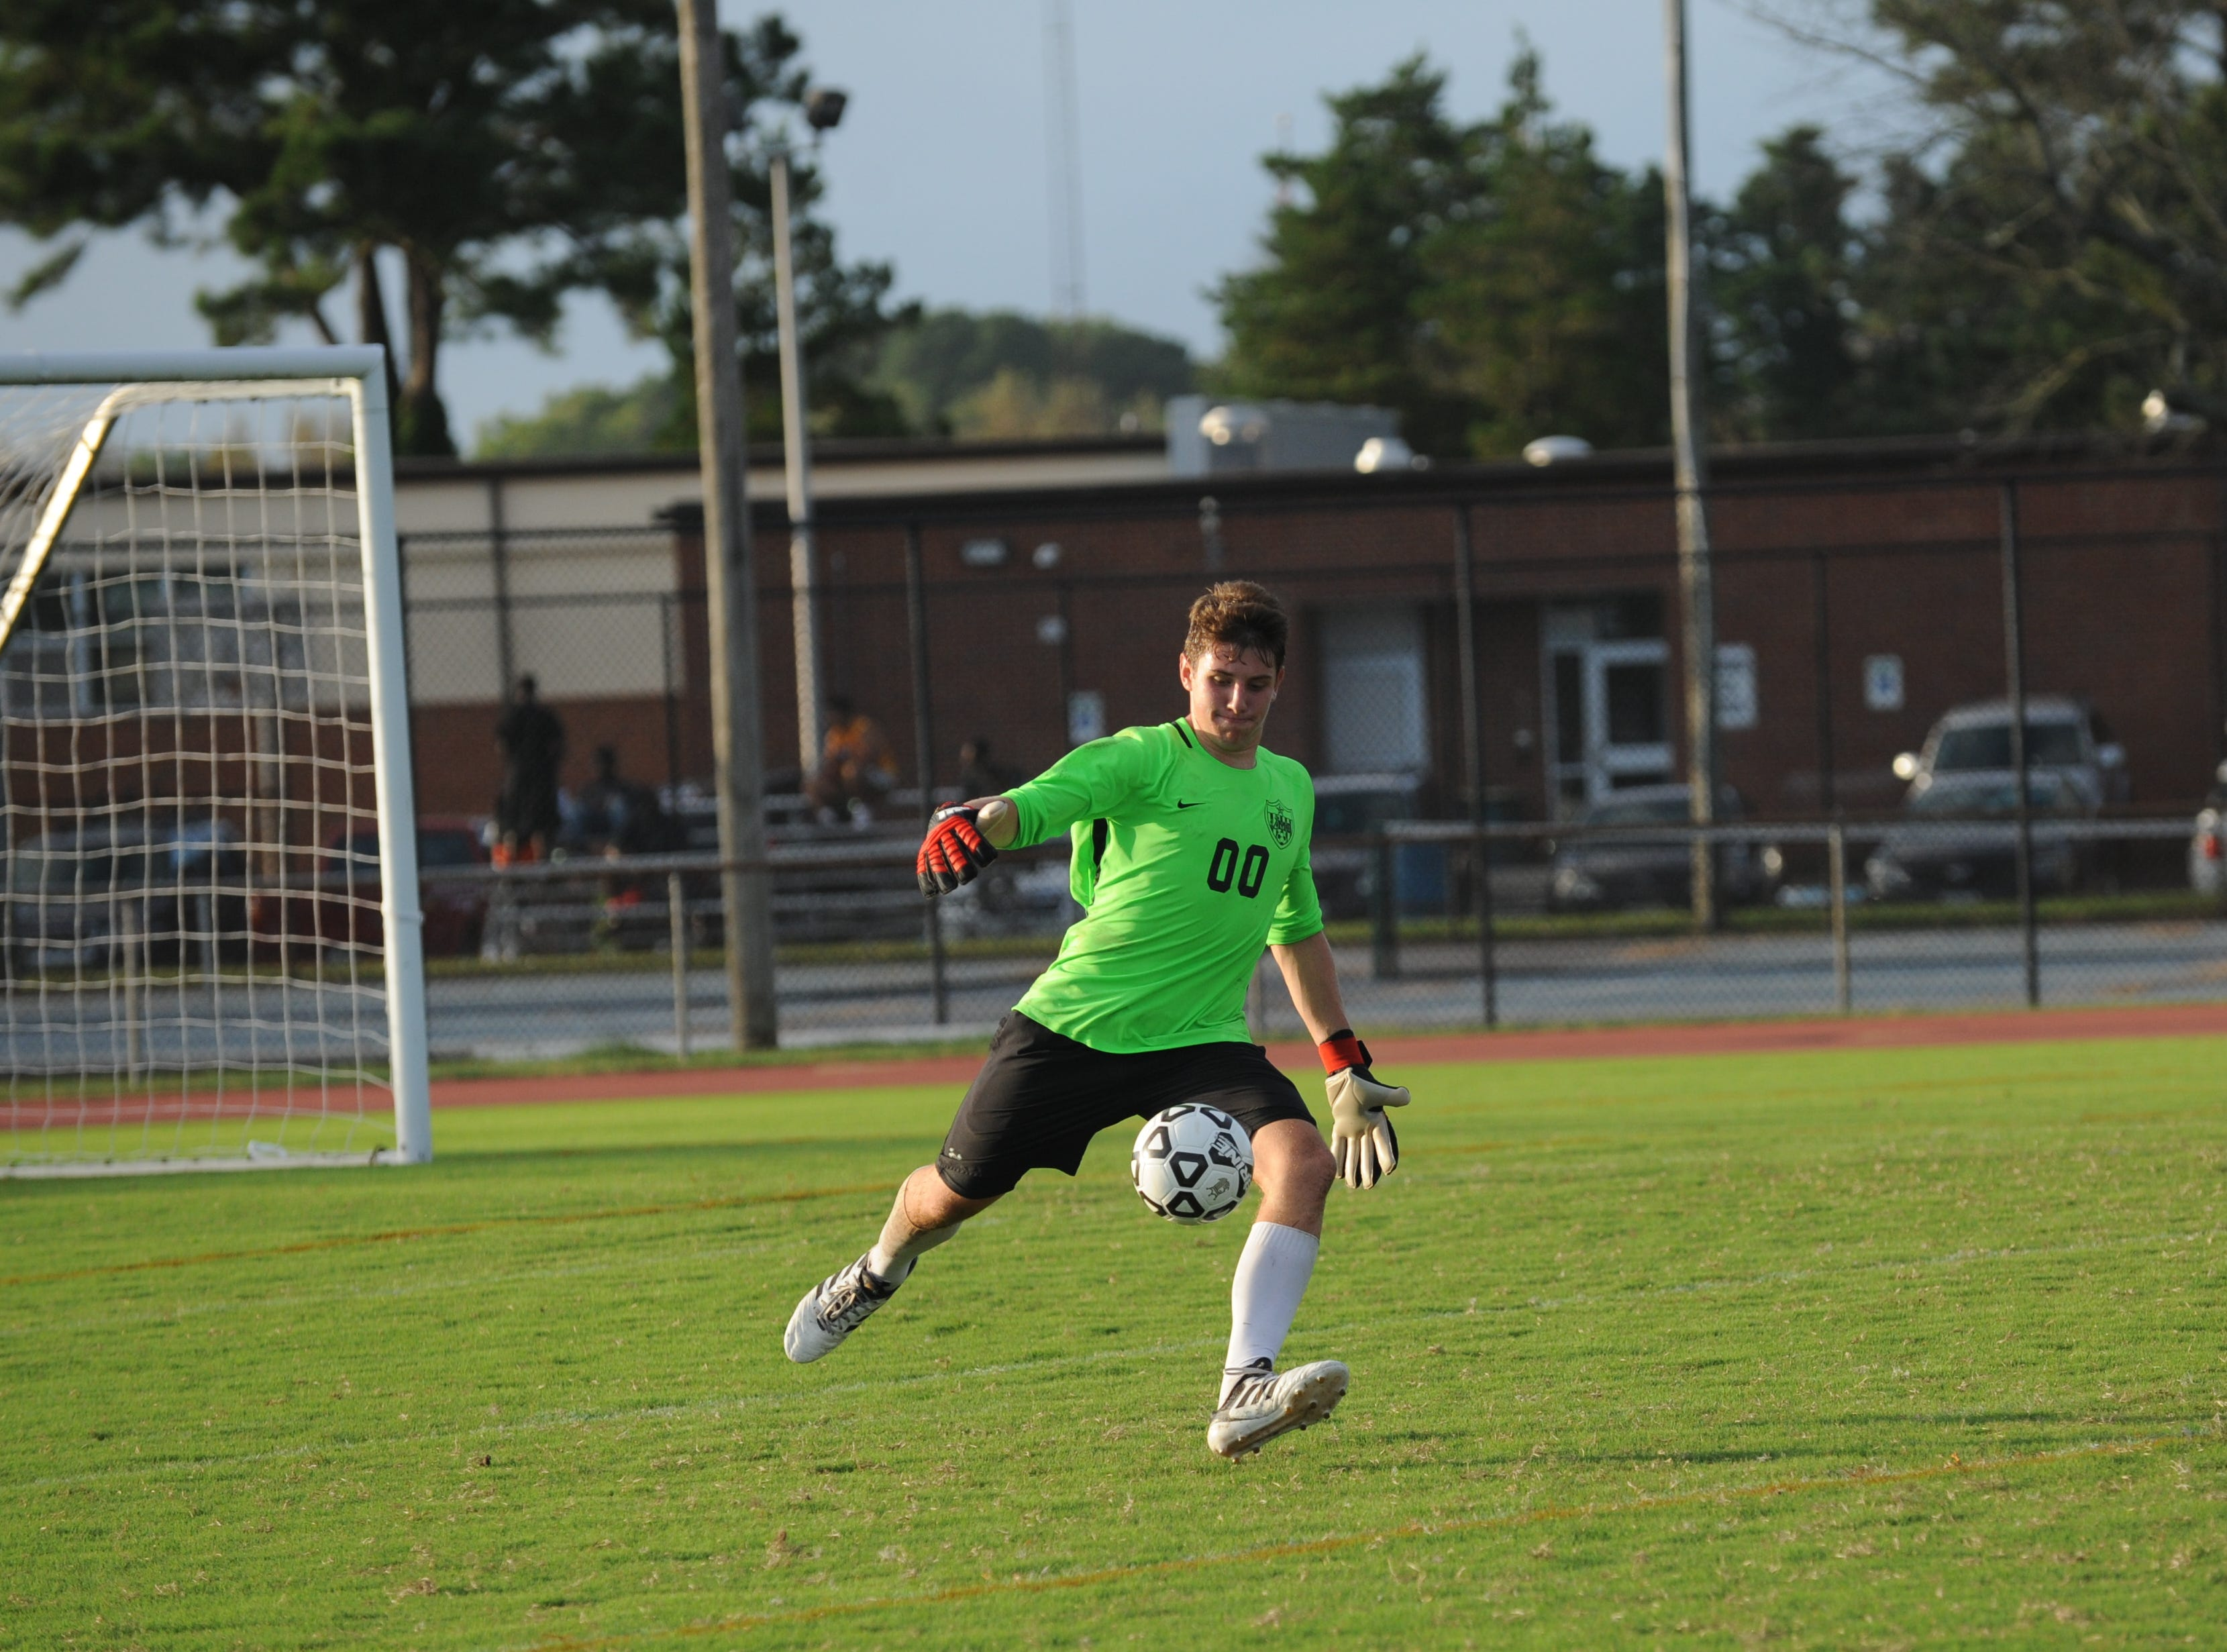 JMB keeper Gabe Dunn kicks the ball up field during Bennett's boys soccer game against Parkside Monday night at County Stadium.